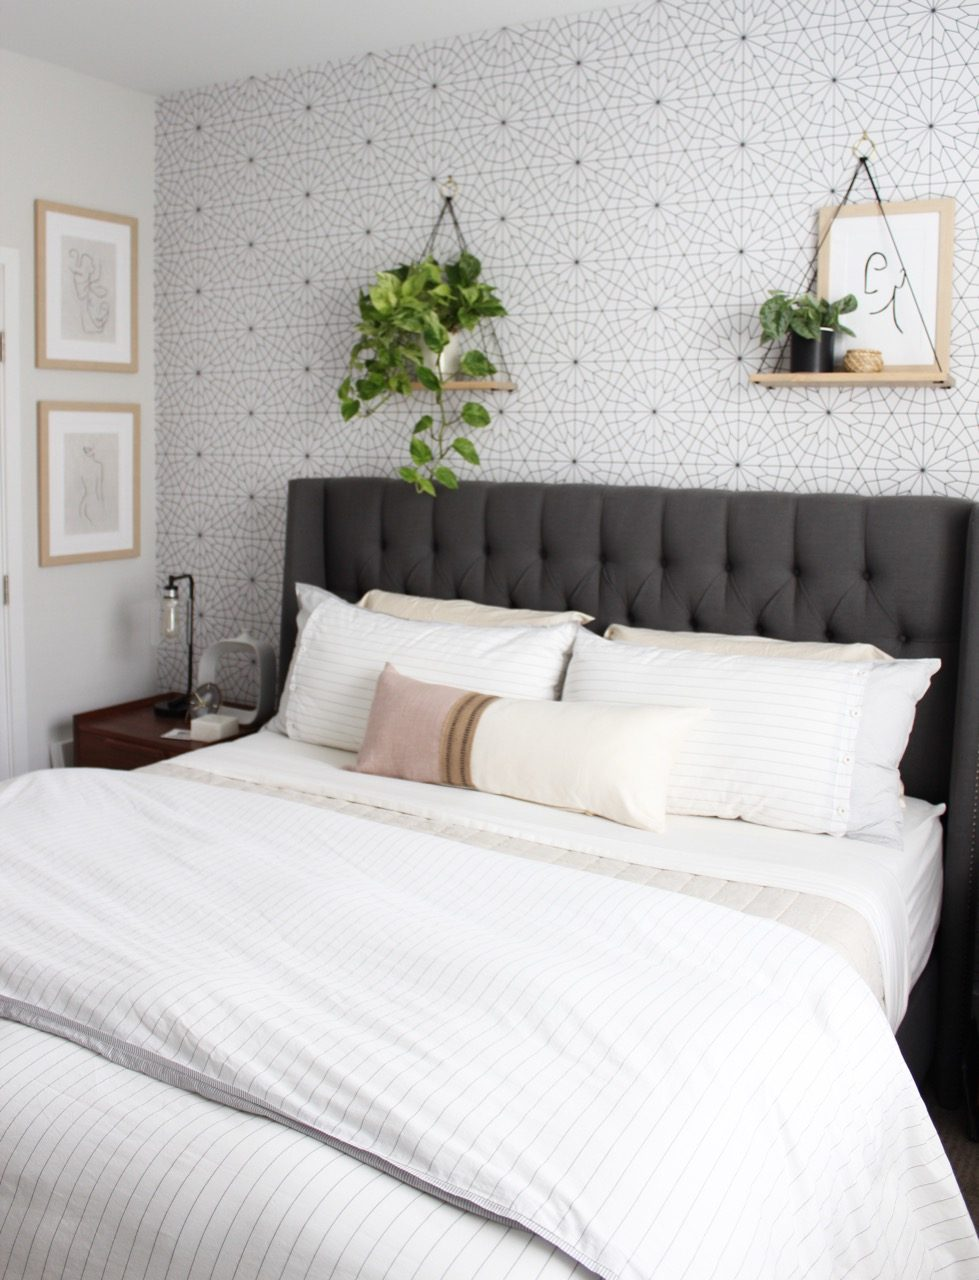 simple bedding and decorations